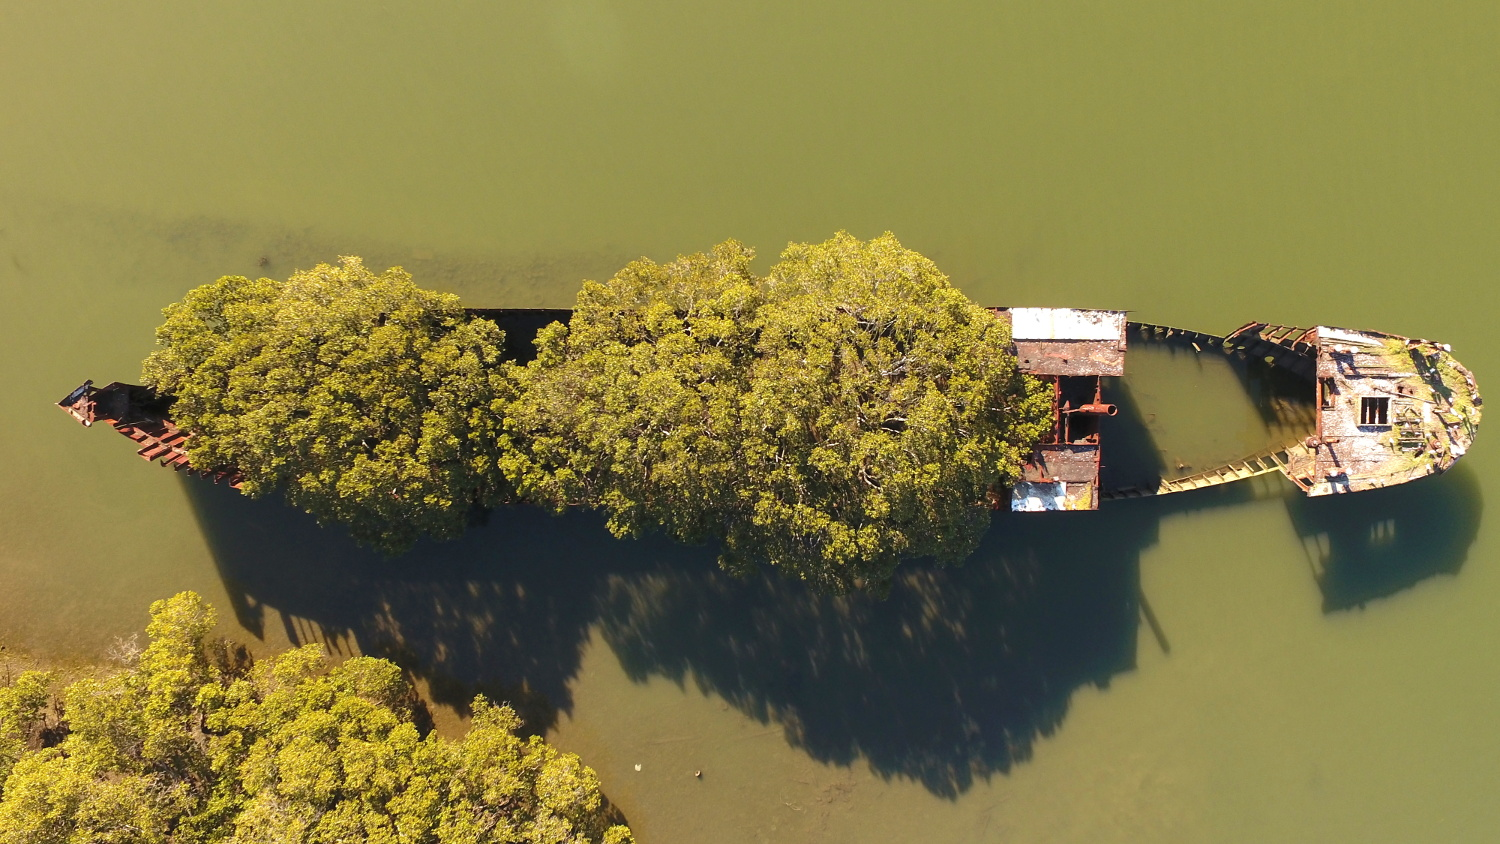 The SS Ayrfield, an abandoned collier, Homebush Bay, Sydney Harbour